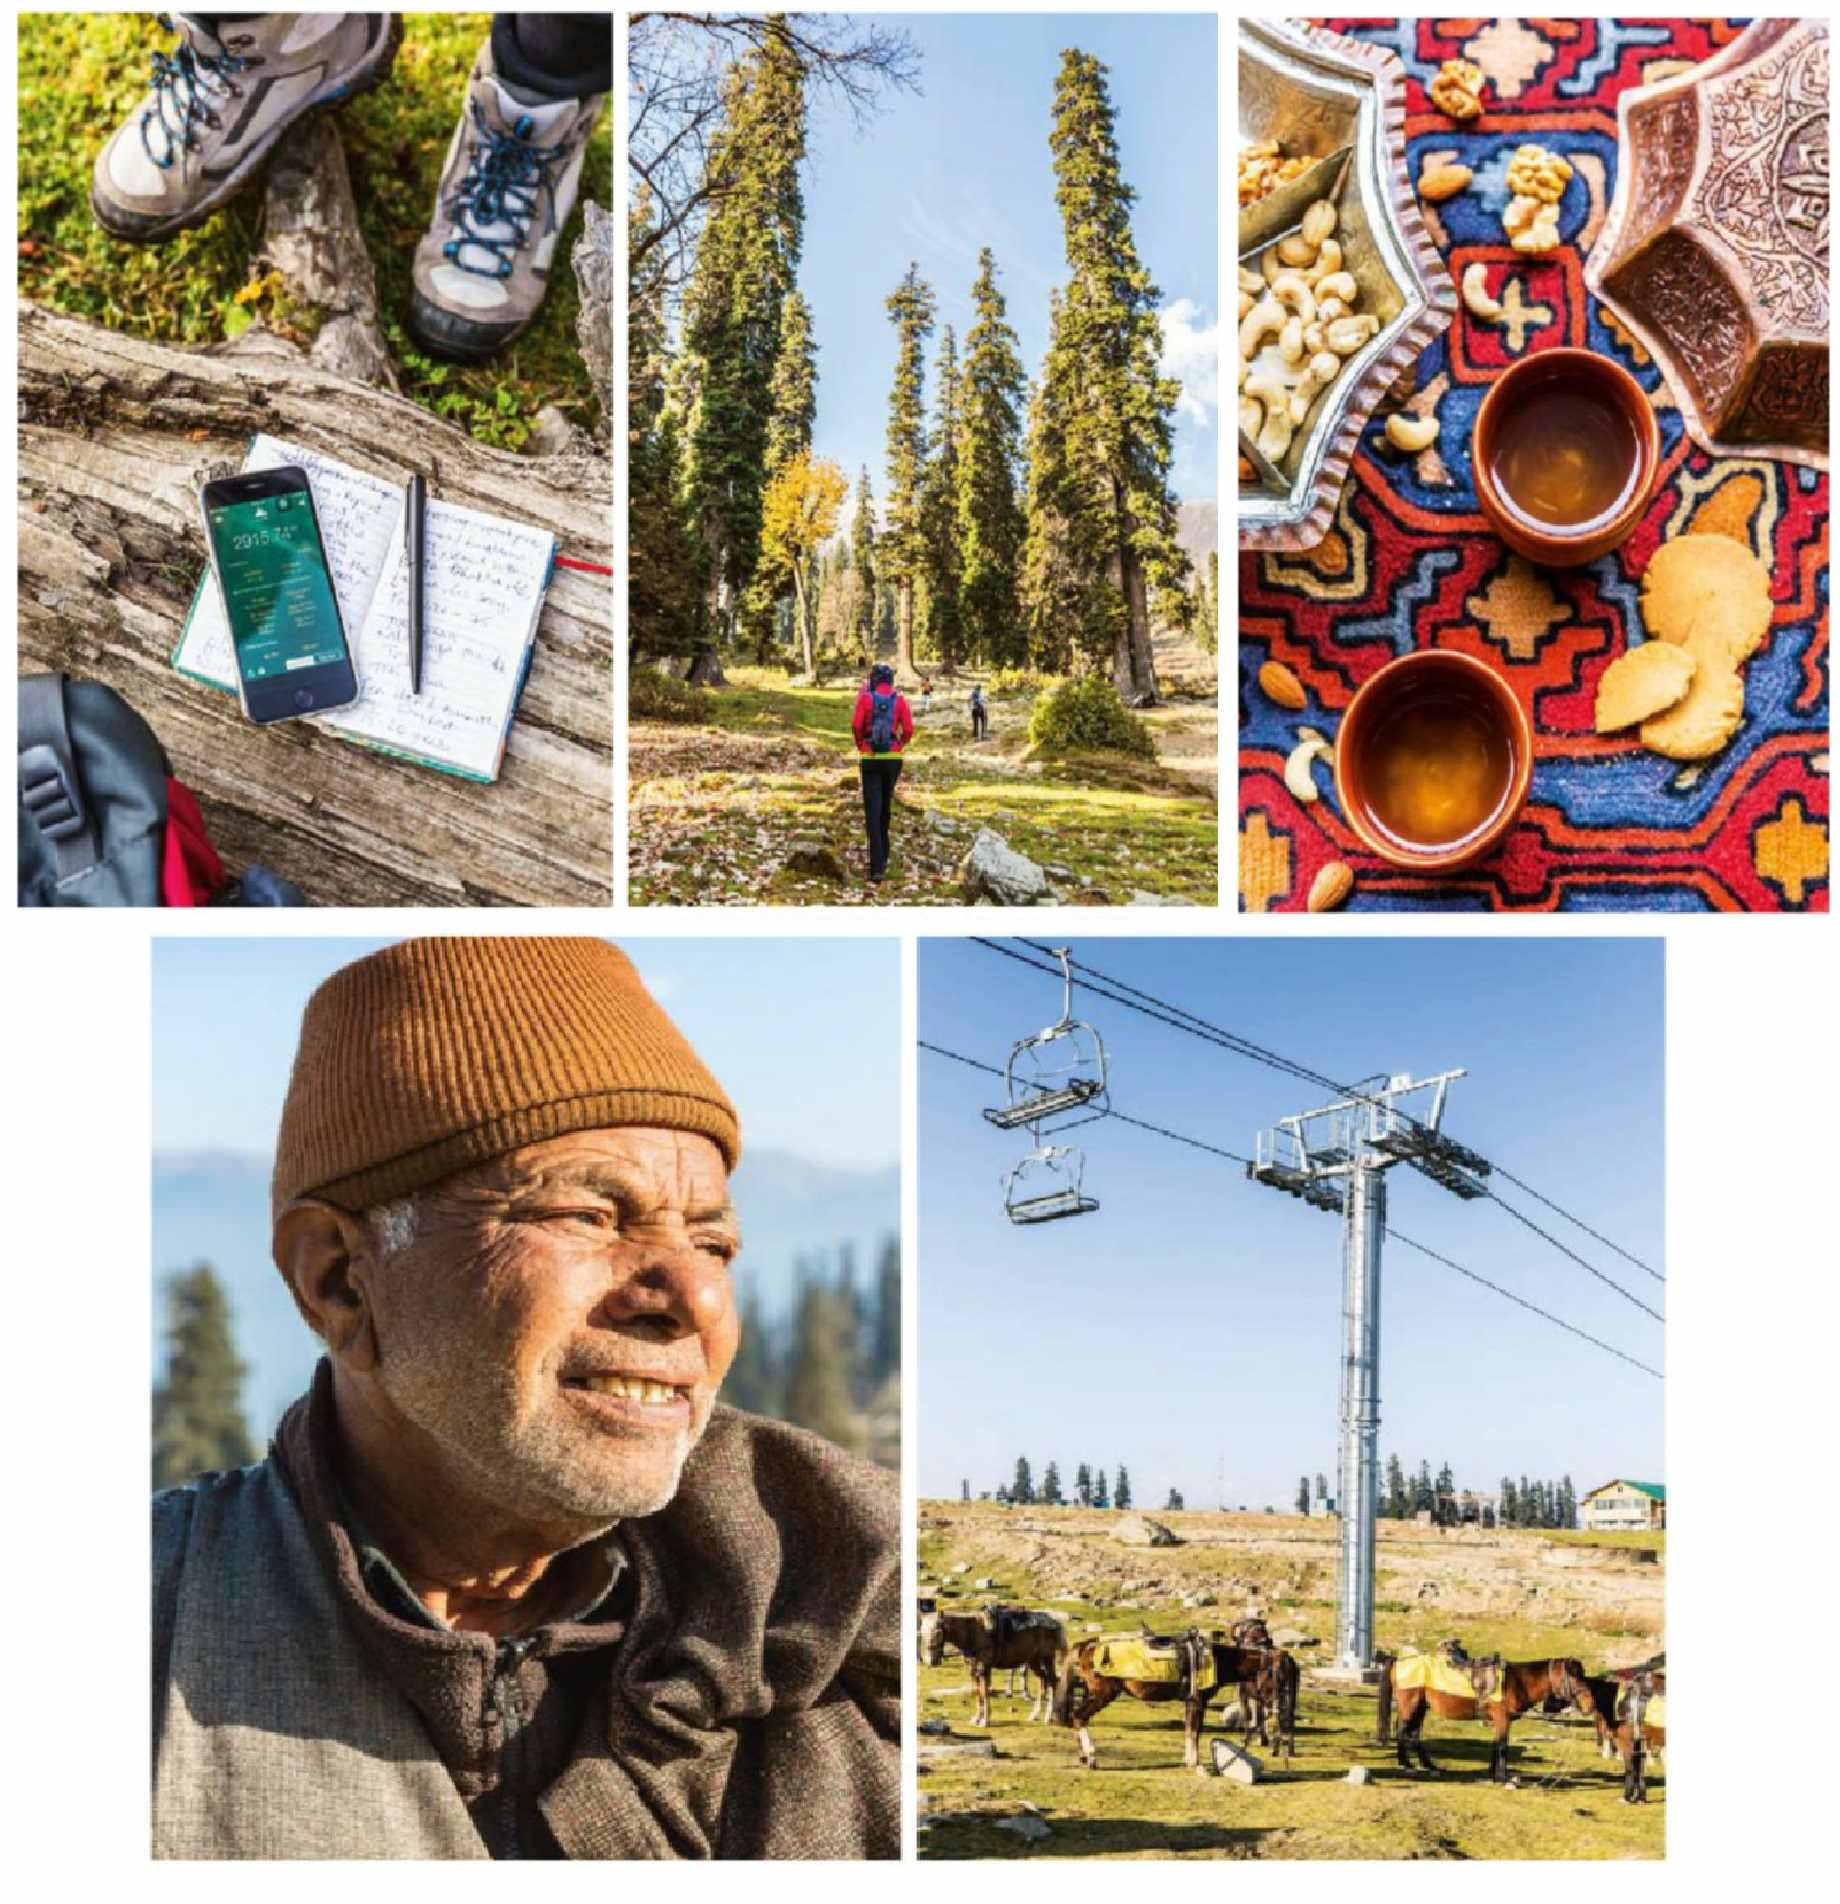 Clockwise from top left: checking the altitude on the hike; leaving the campsite; tea with biscuits and nuts at The Khyber Himalayan Resort & Spa; horses wait for tourists below the gondola; a local on the mountain. Previous pages: the view down Drung Valley on the hike up the mountain